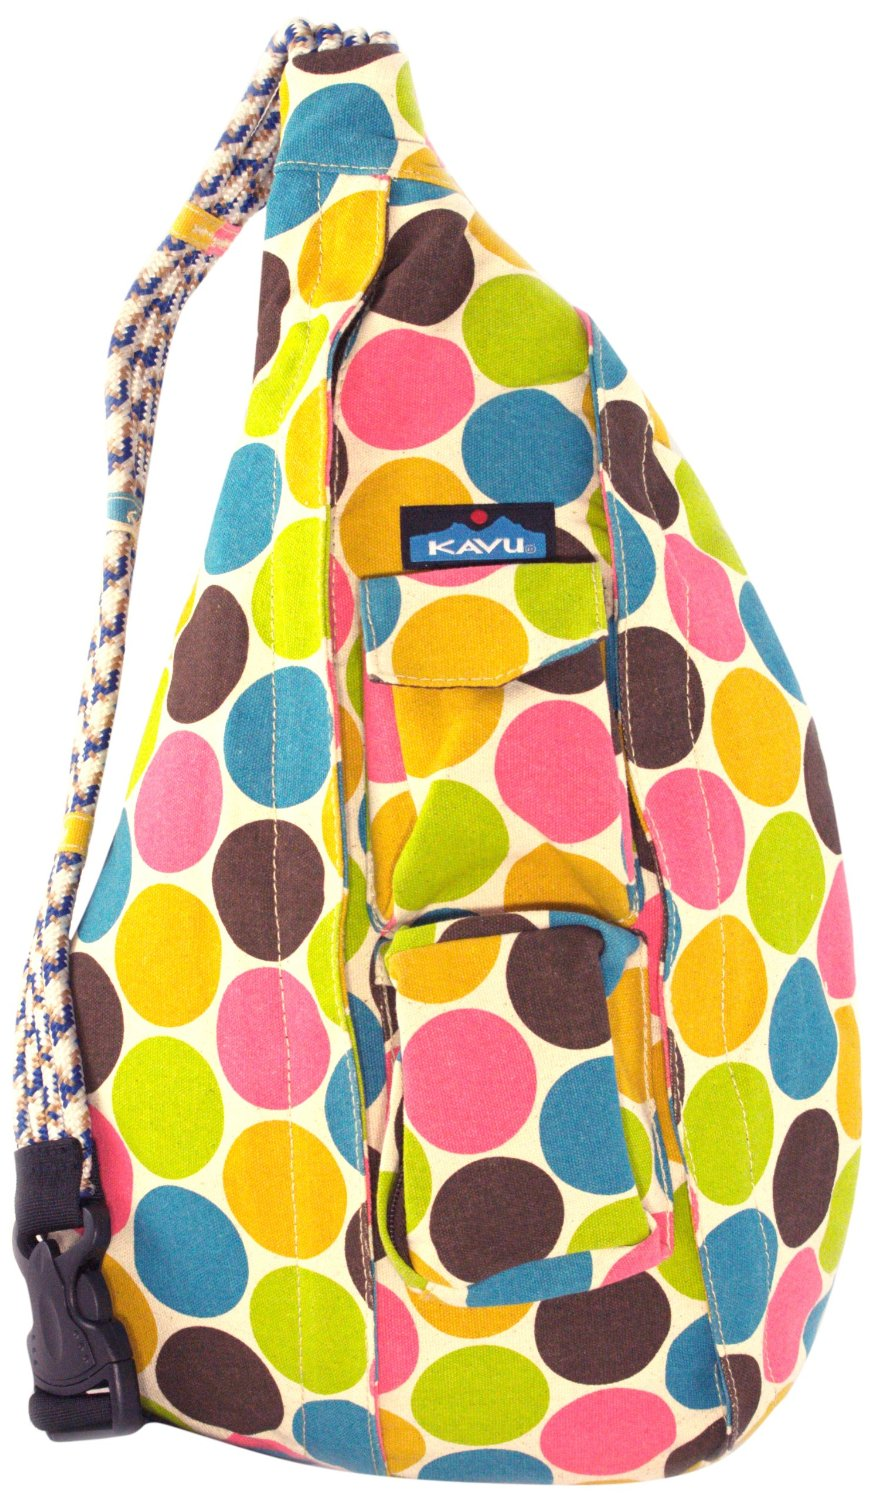 Kavu Sling Bag Comes In A Variety Of Colours Image From Website